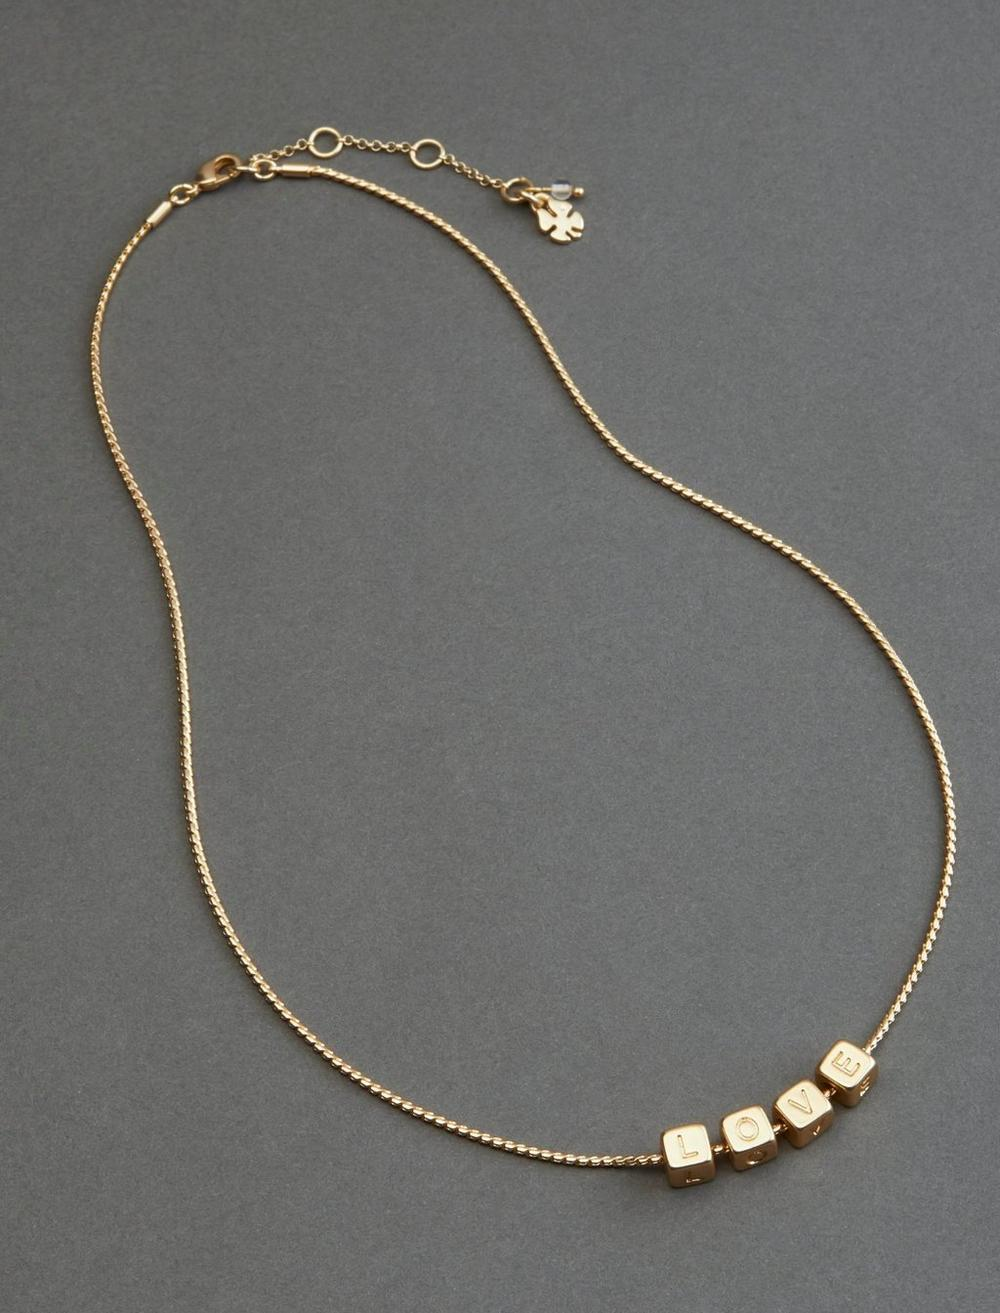 PAVE LOVE BEADED COLLAR NECKLACE, image 1